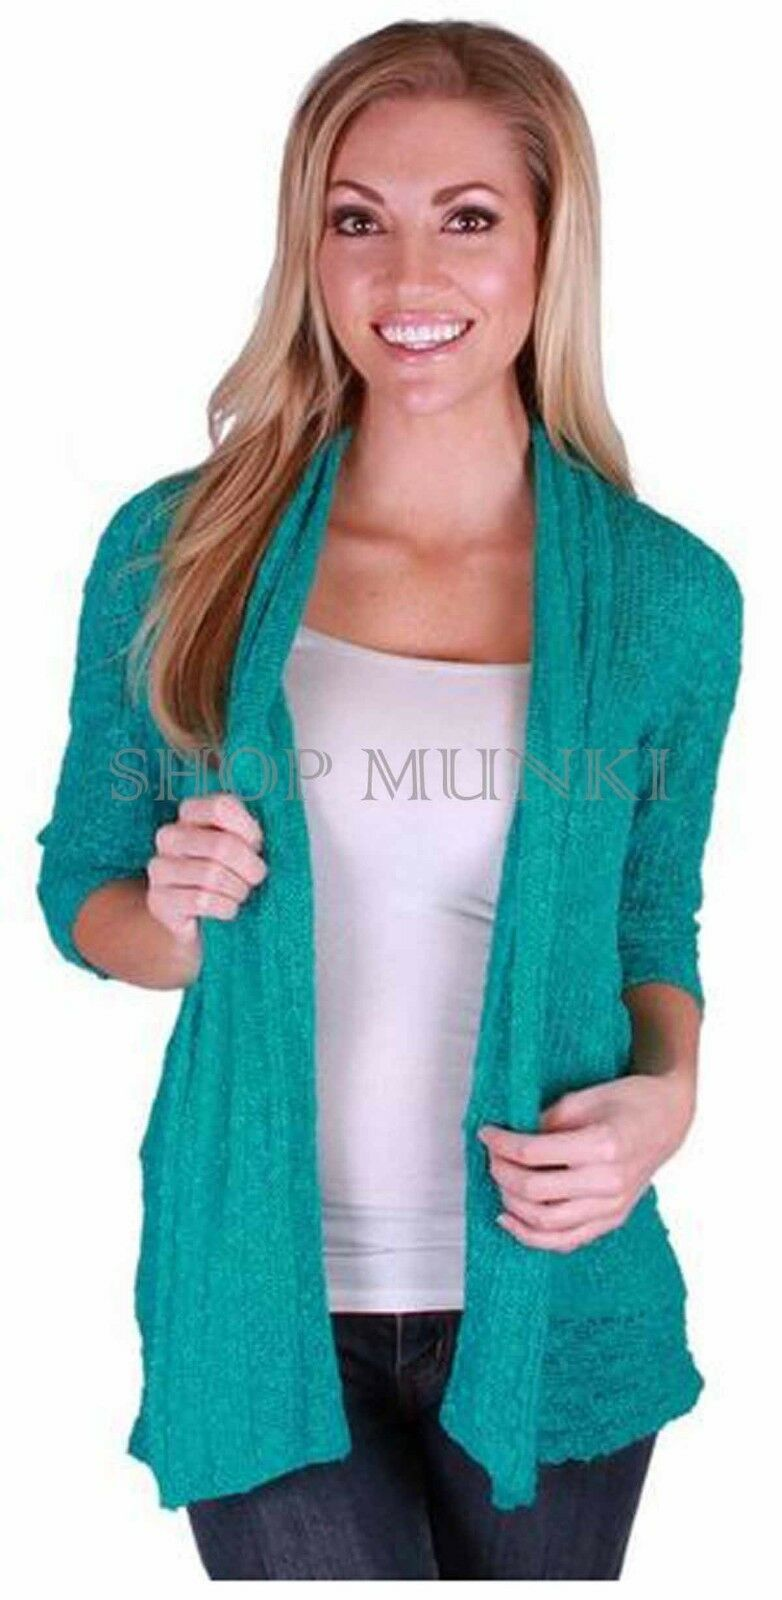 Primary image for Fever Women's Sheer Slub Knit Open Cardigan Sweater Green Sz S  ret $59